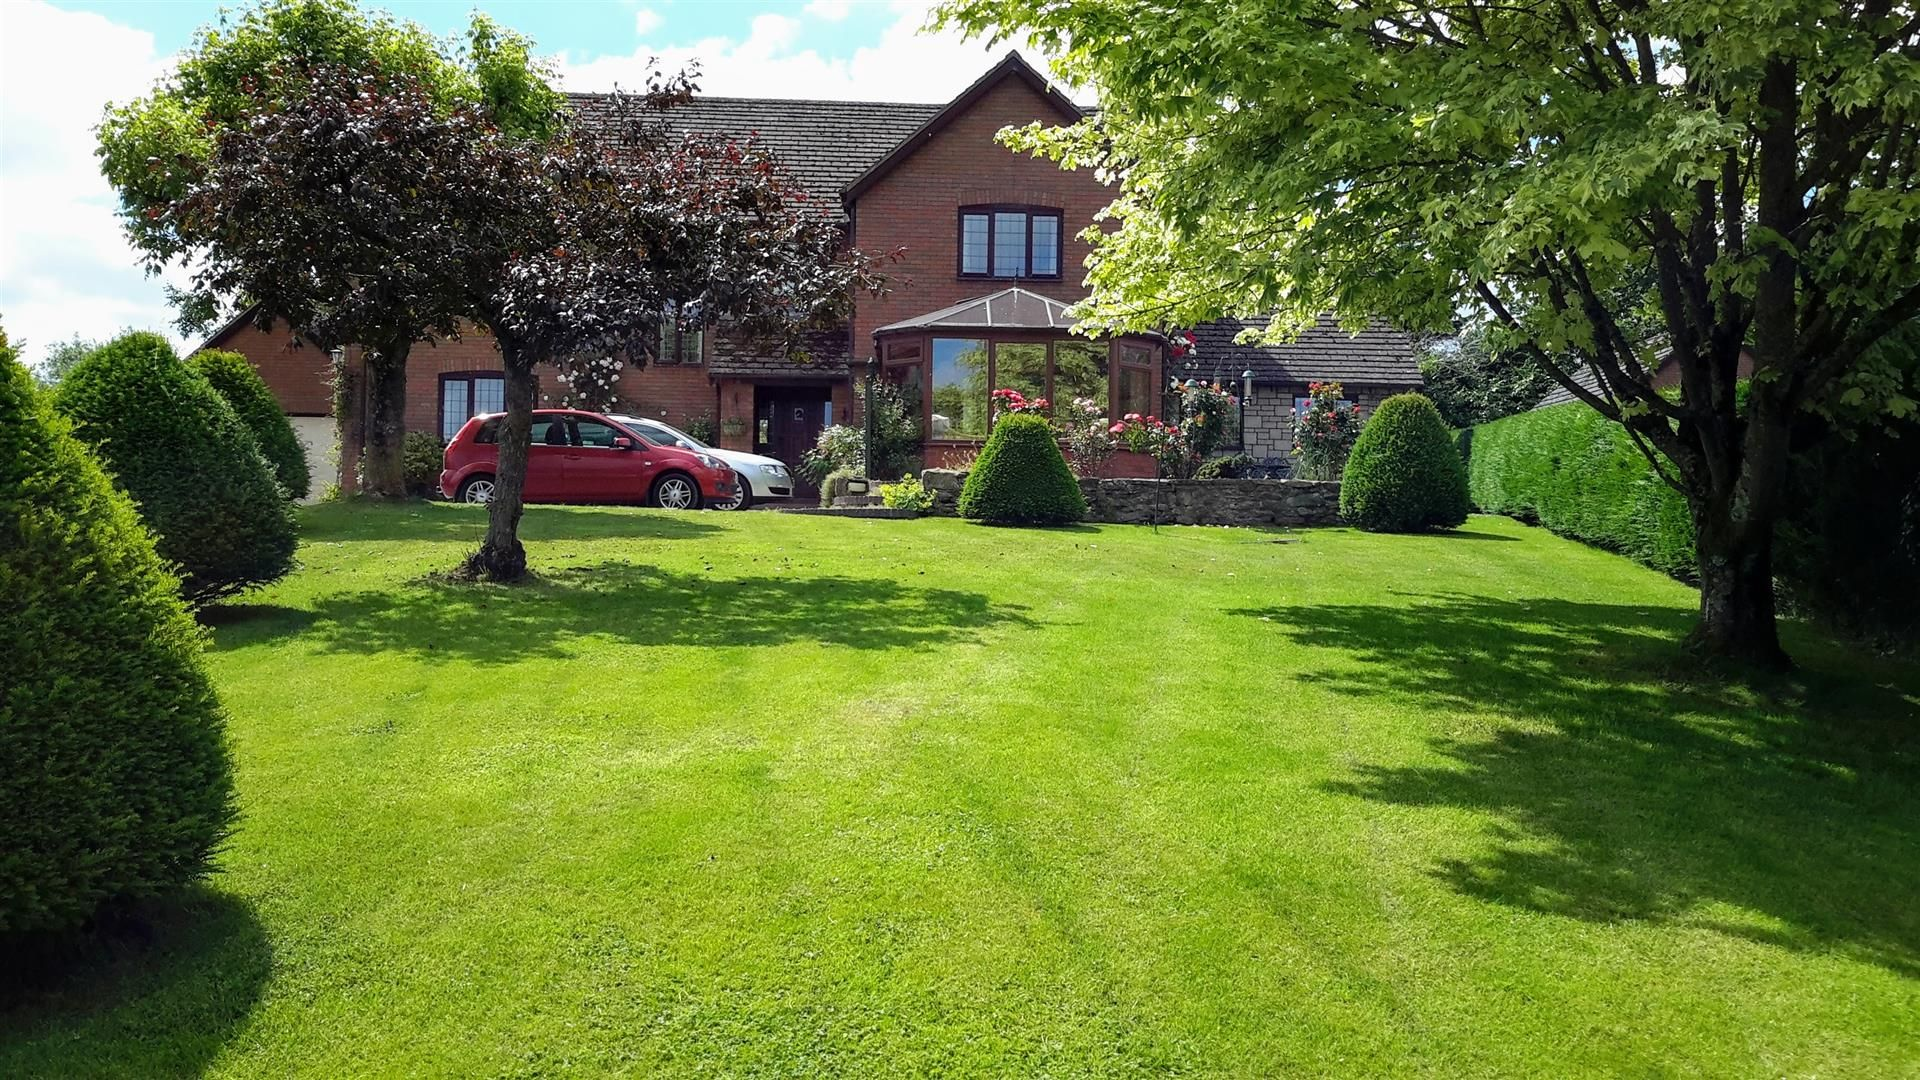 5 bed detached for sale in Stoke Prior, HR6